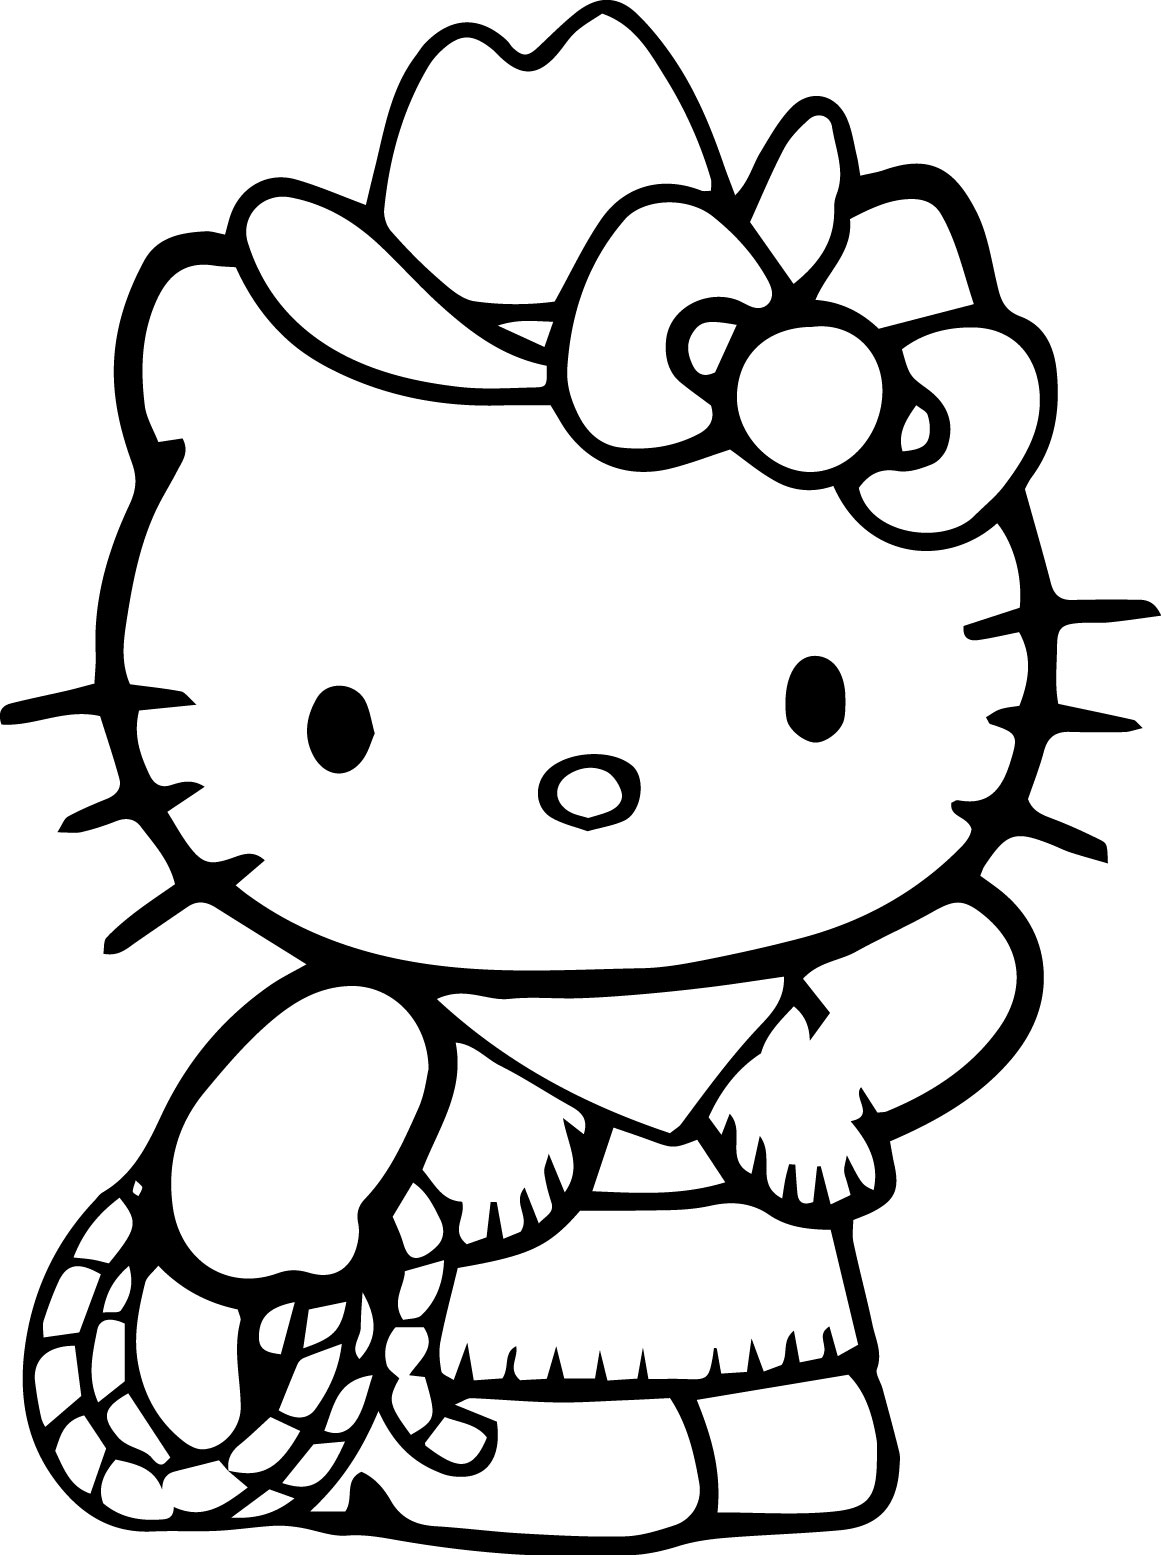 Top 10 Hello Kitty Coloring Pages Games Free